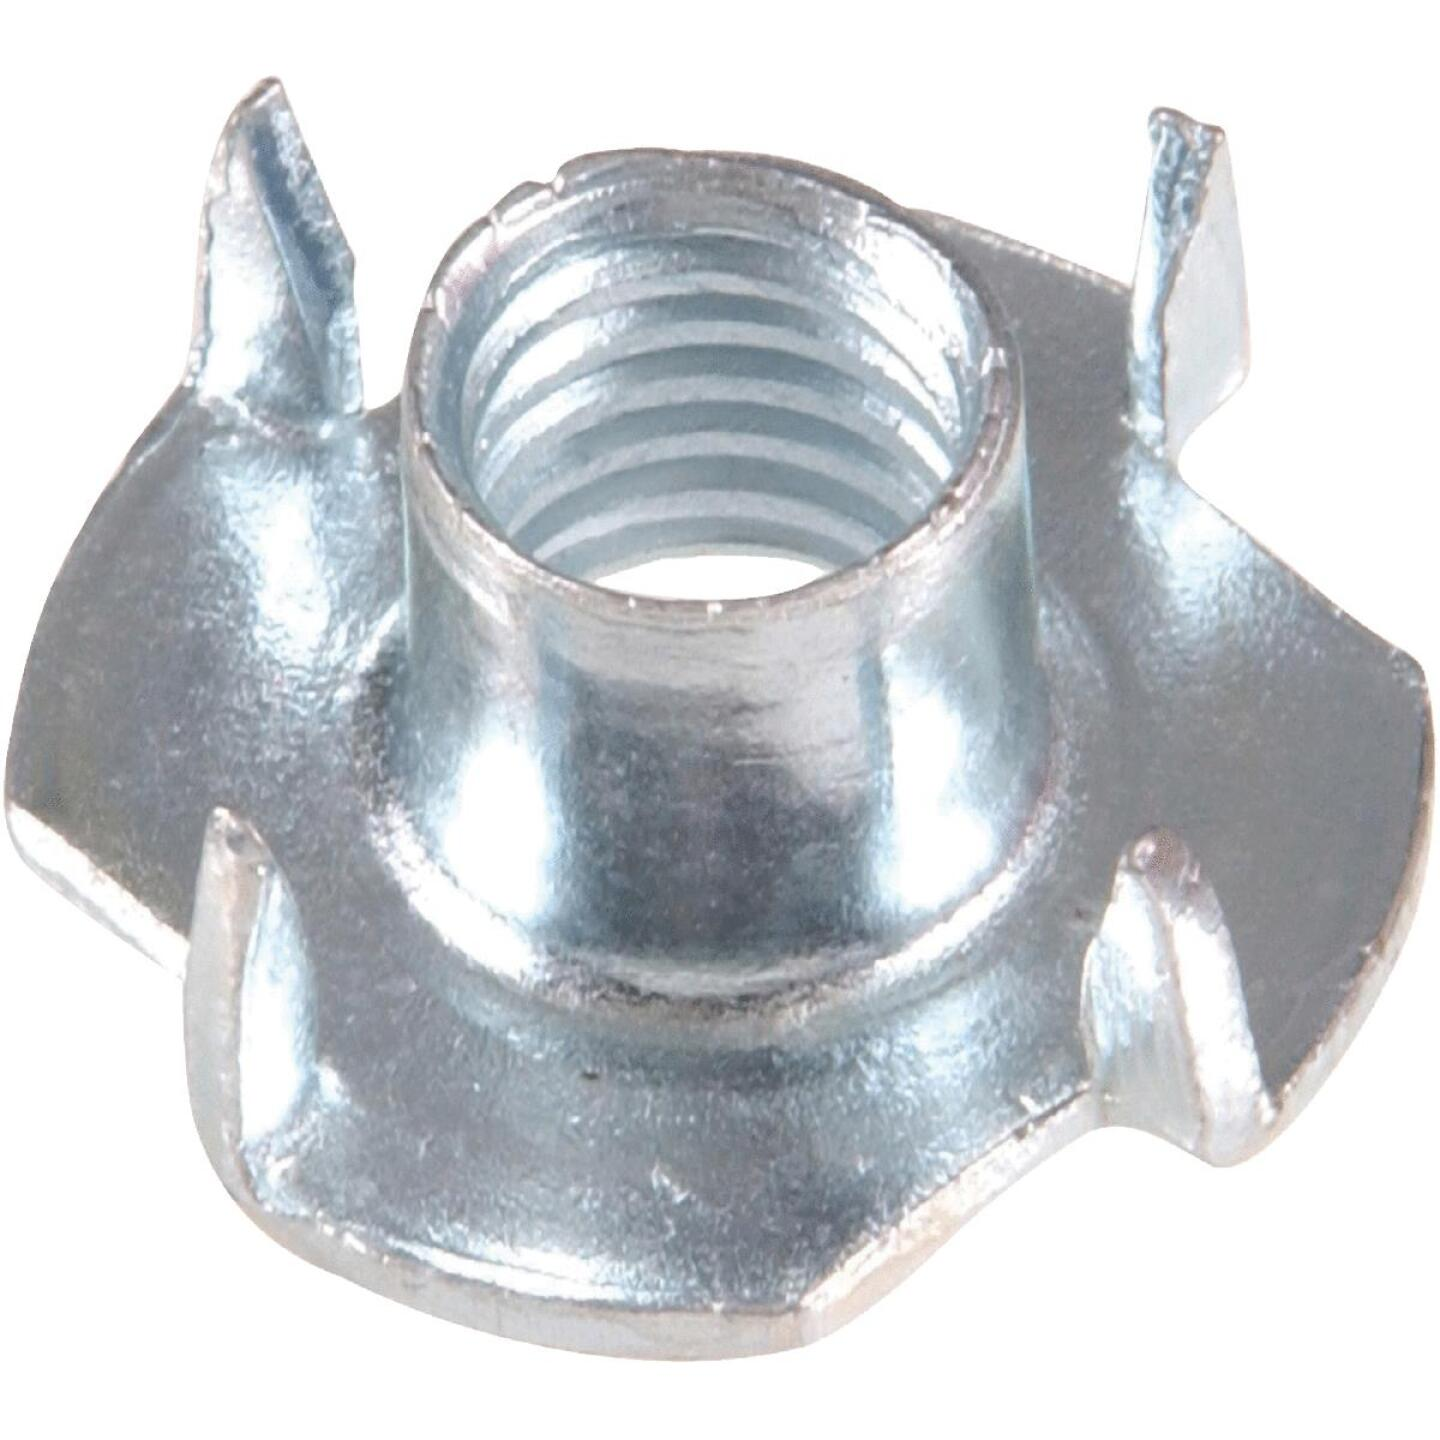 Hillman 1/4 In. 20 tpi Pronged Tee Nuts (4 Ct.) Image 1